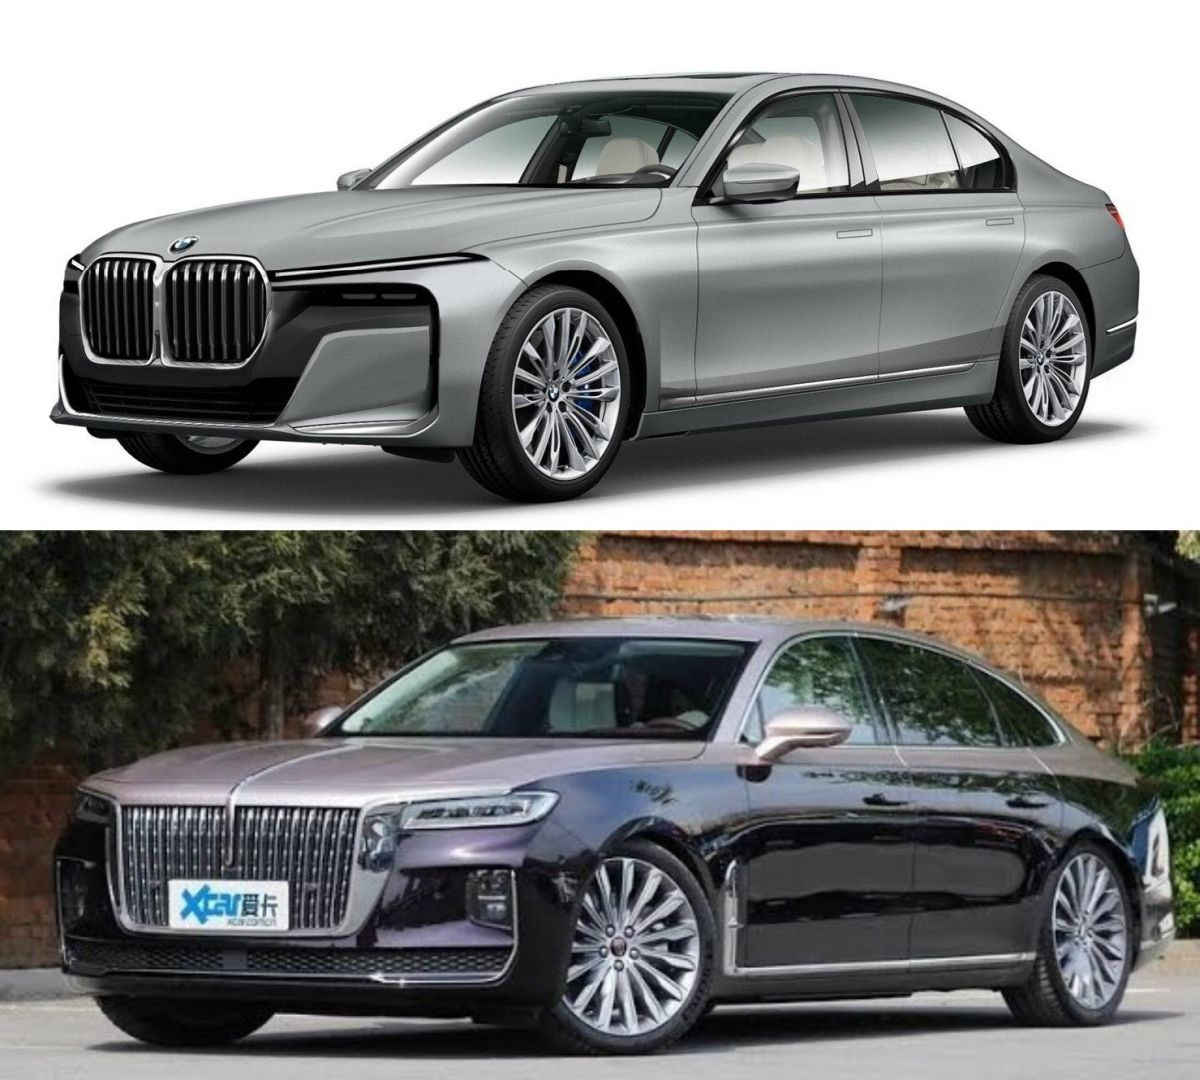 BMW series 7 project like chinese car